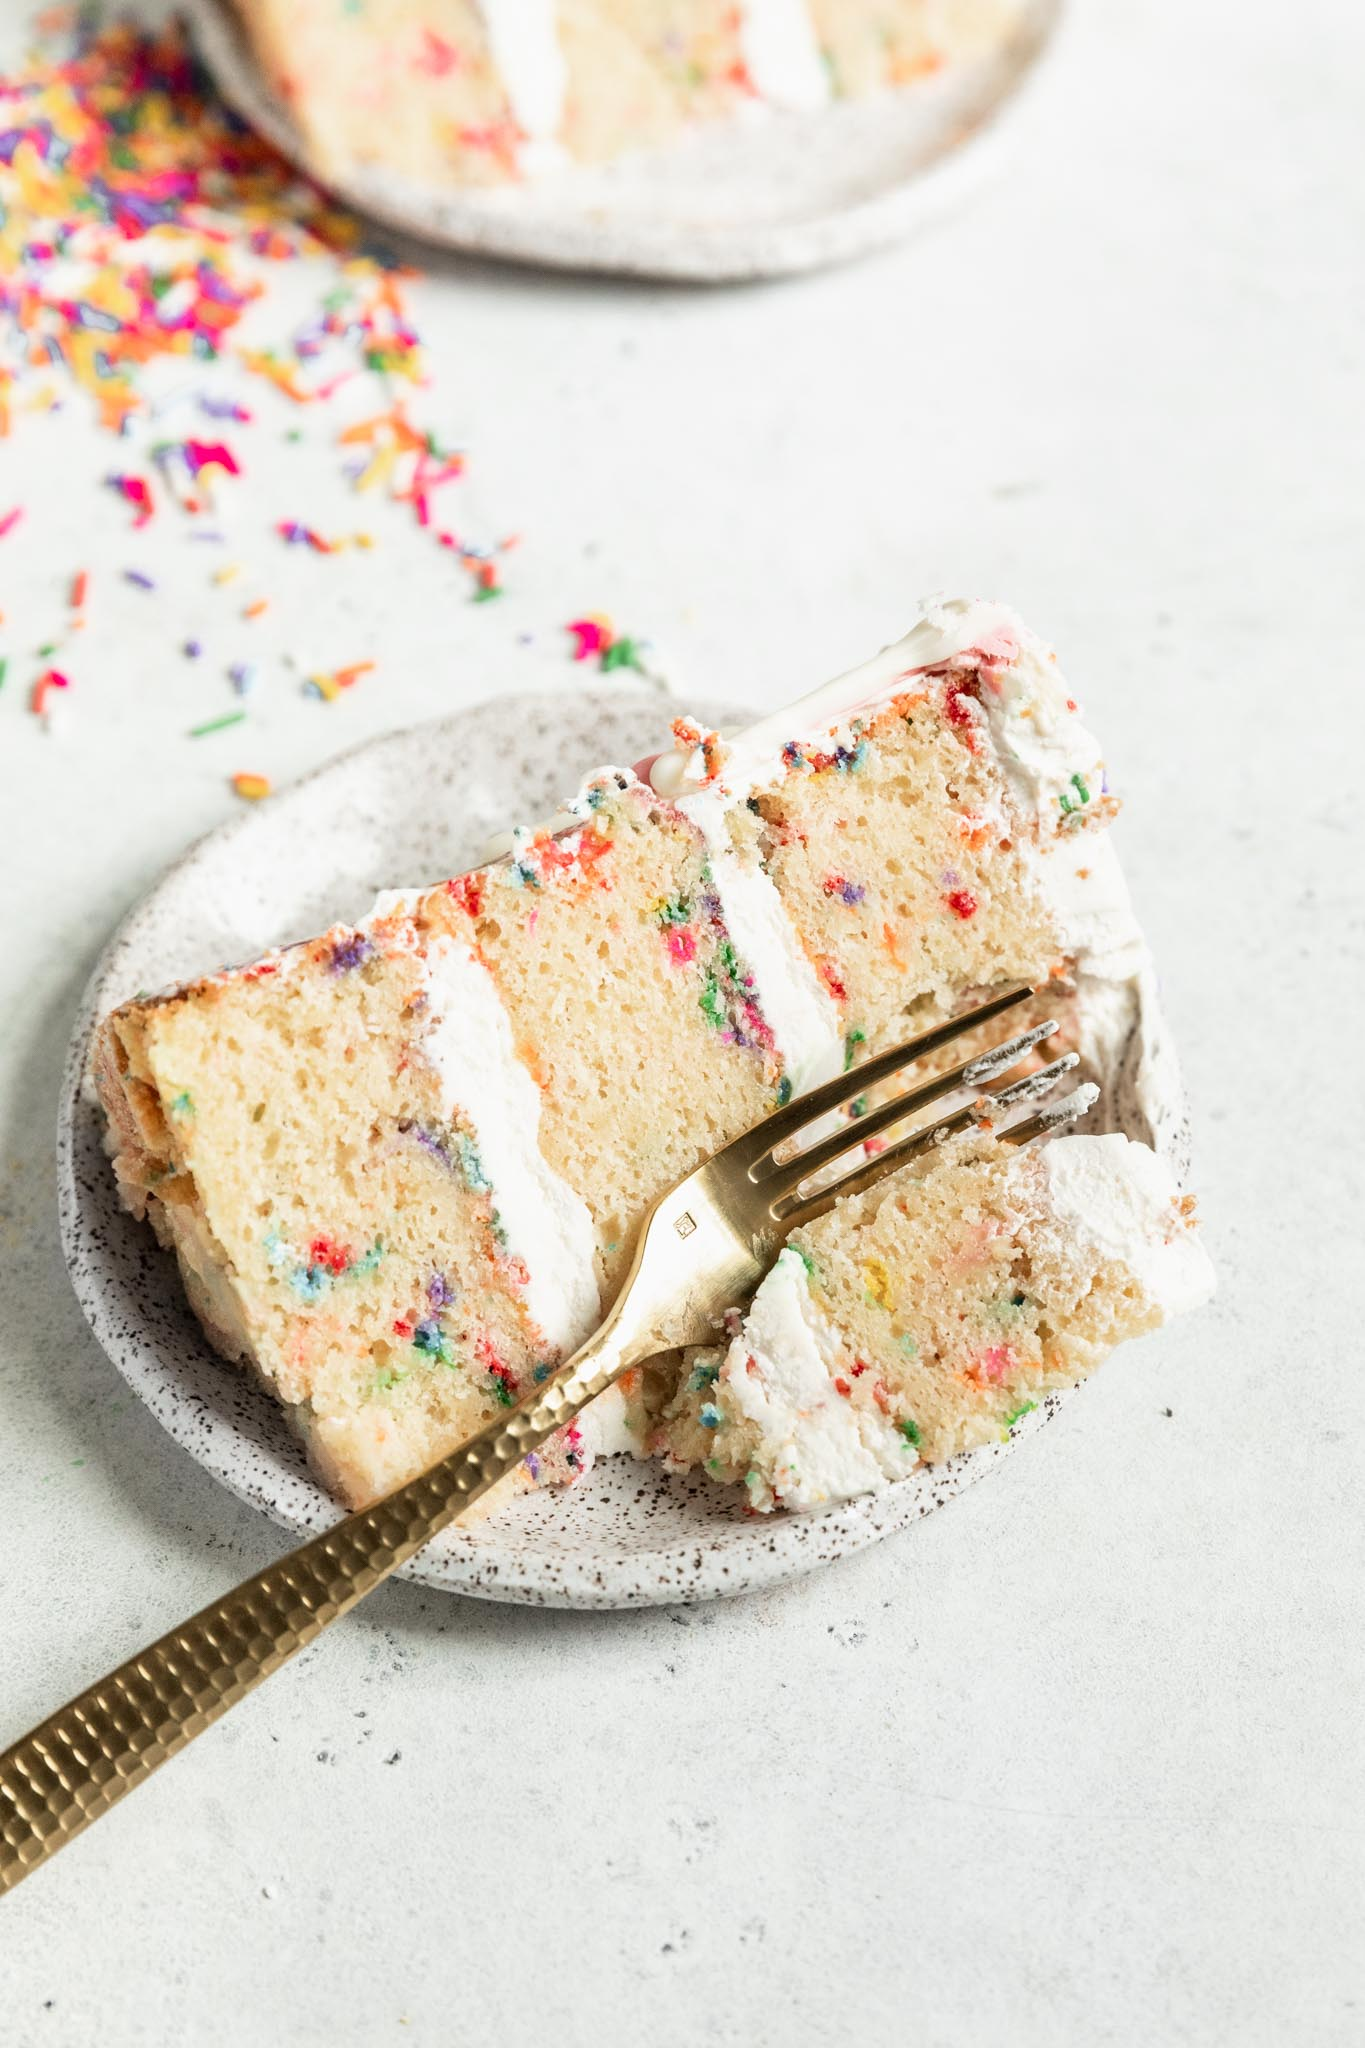 The best funfetti cake recipe! Tastes even better than the pillsbury cake mix and makes the perfect birthday cake.